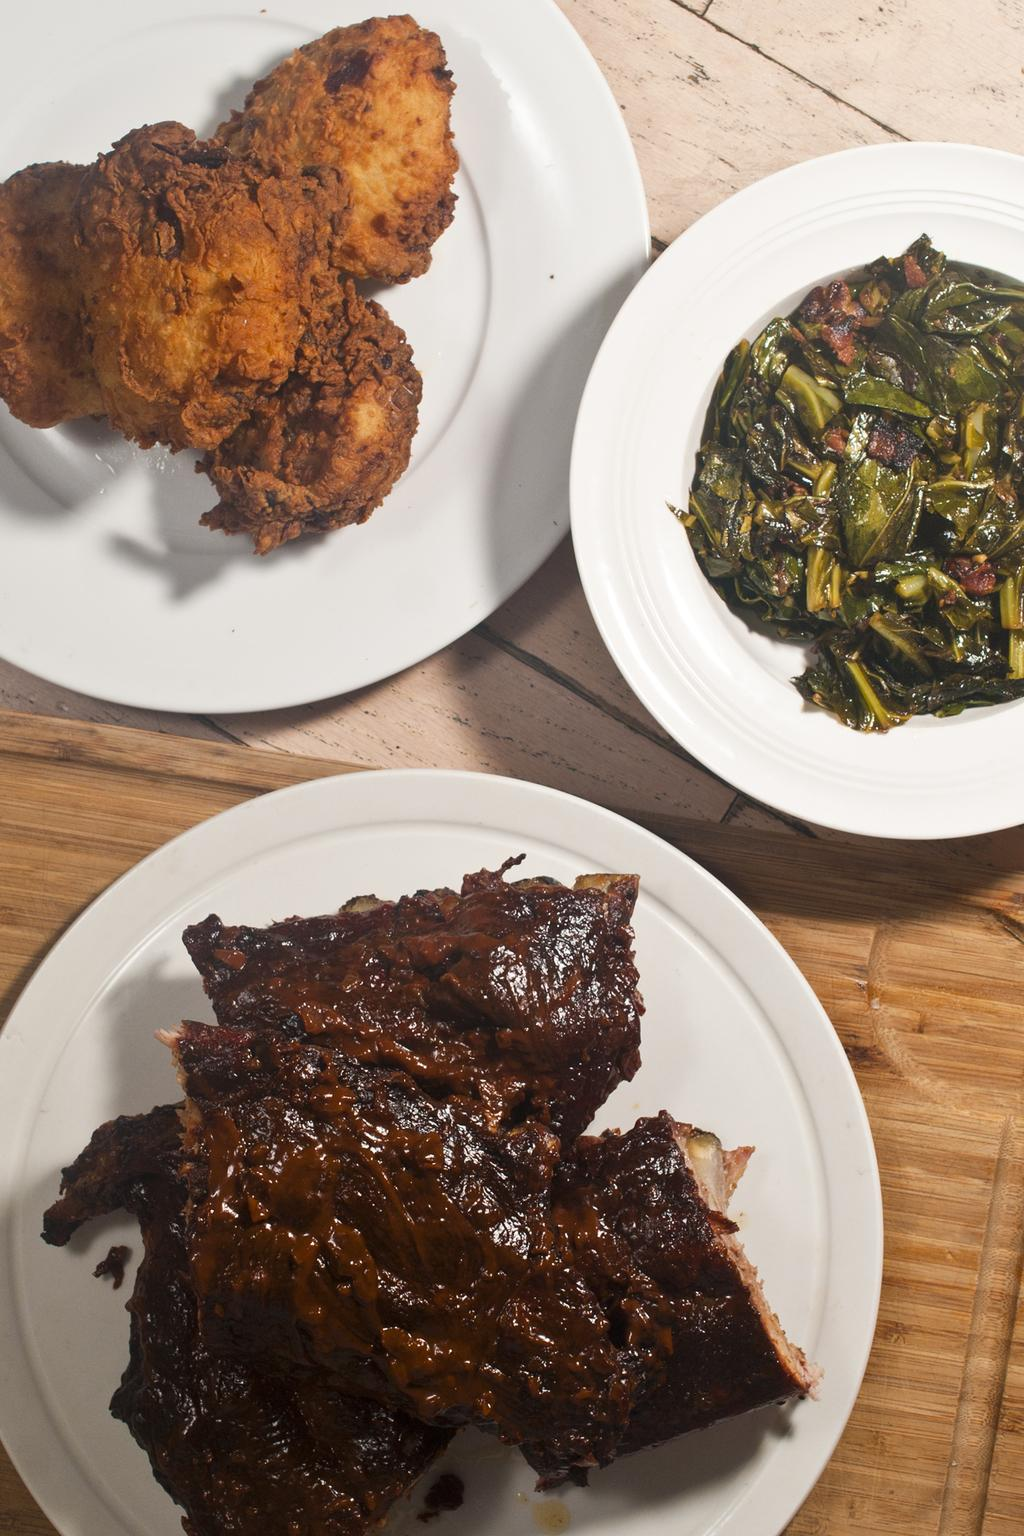 Chocolate Chipotle Ribs, Southern Fried Buttermilk Chicken and Collard Greens with Bacon